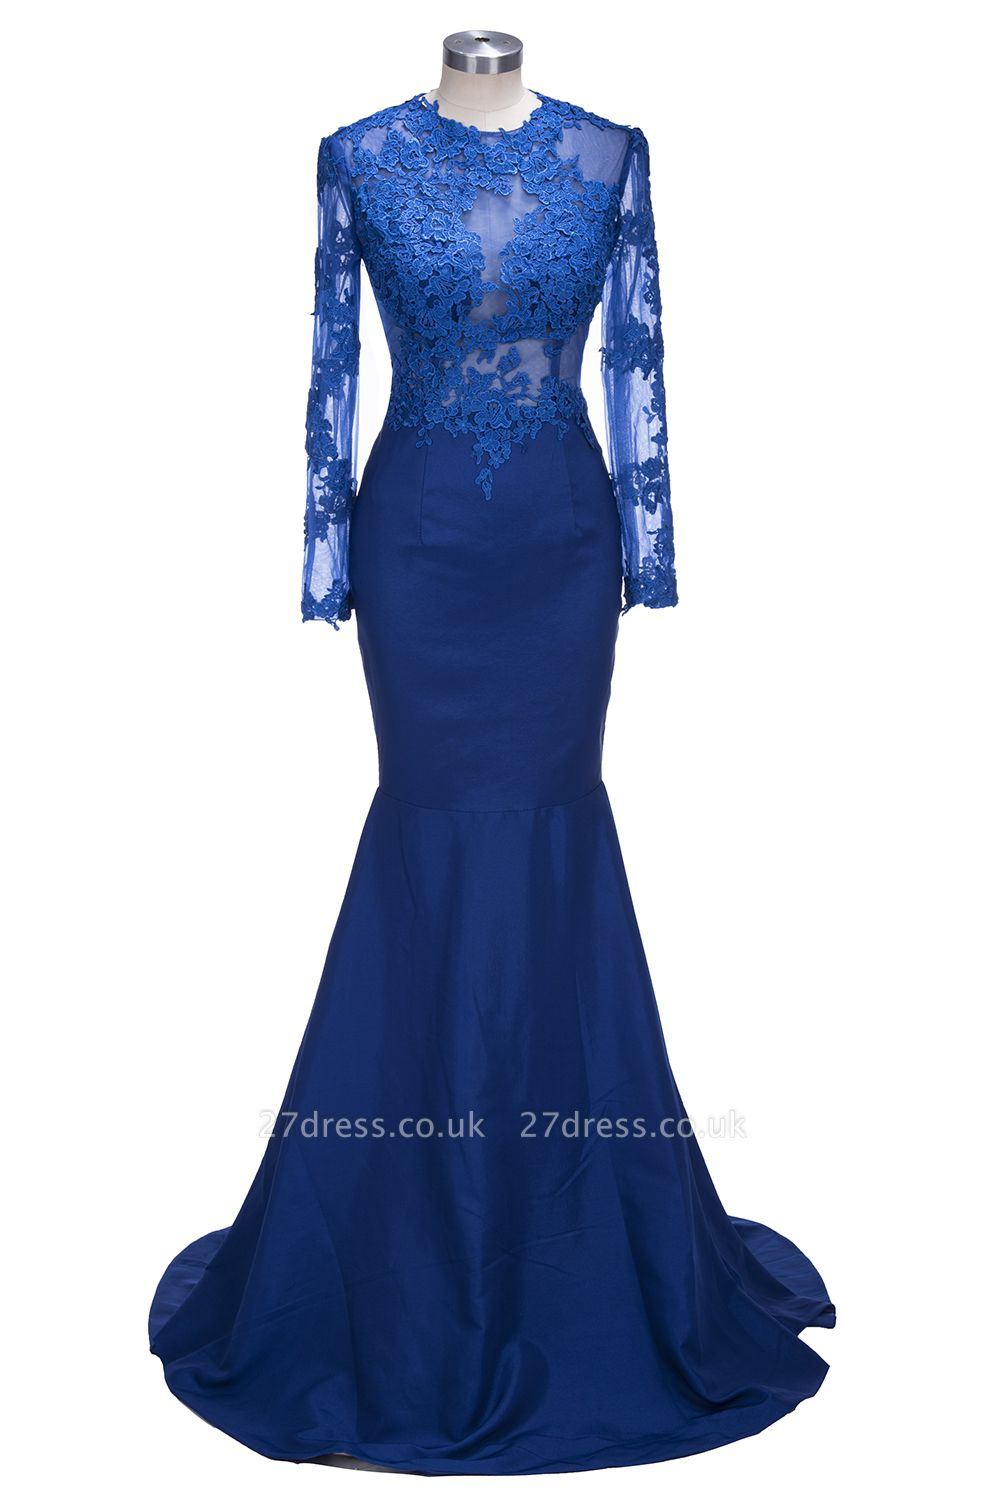 Delicate Royal Blue Lace Appliques Evening Dress UK Mermaid Long Sleeve BK0